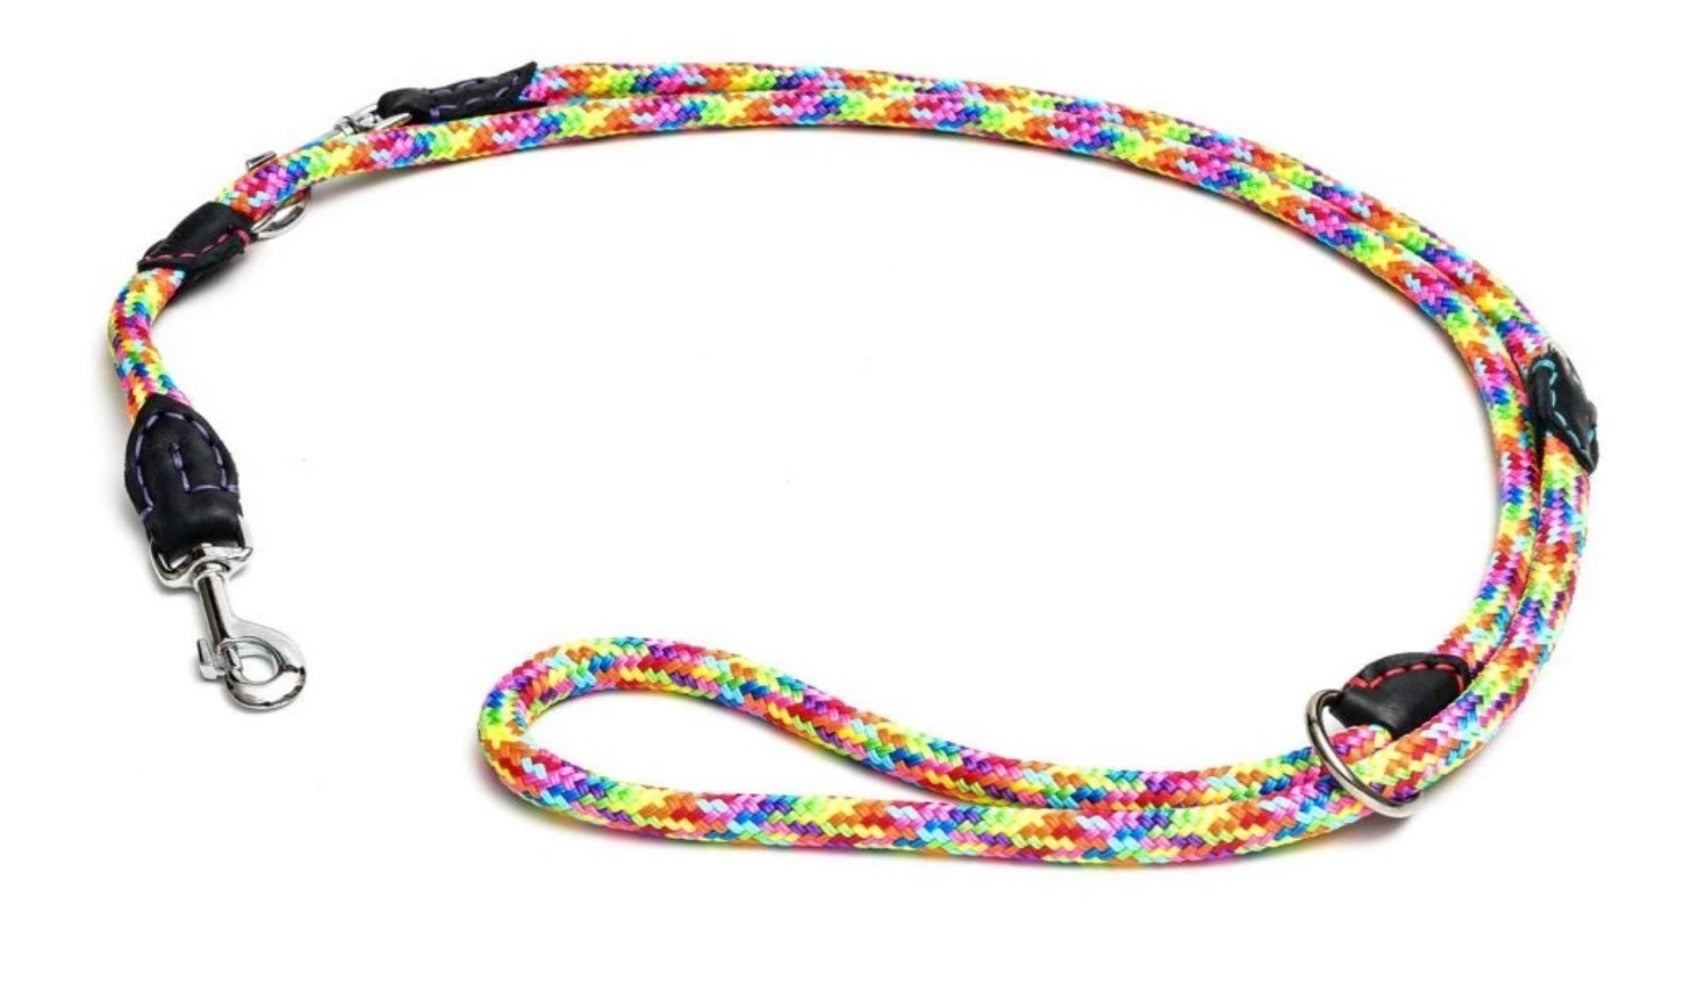 (NEW) 5 in one Rope/Leather Leash